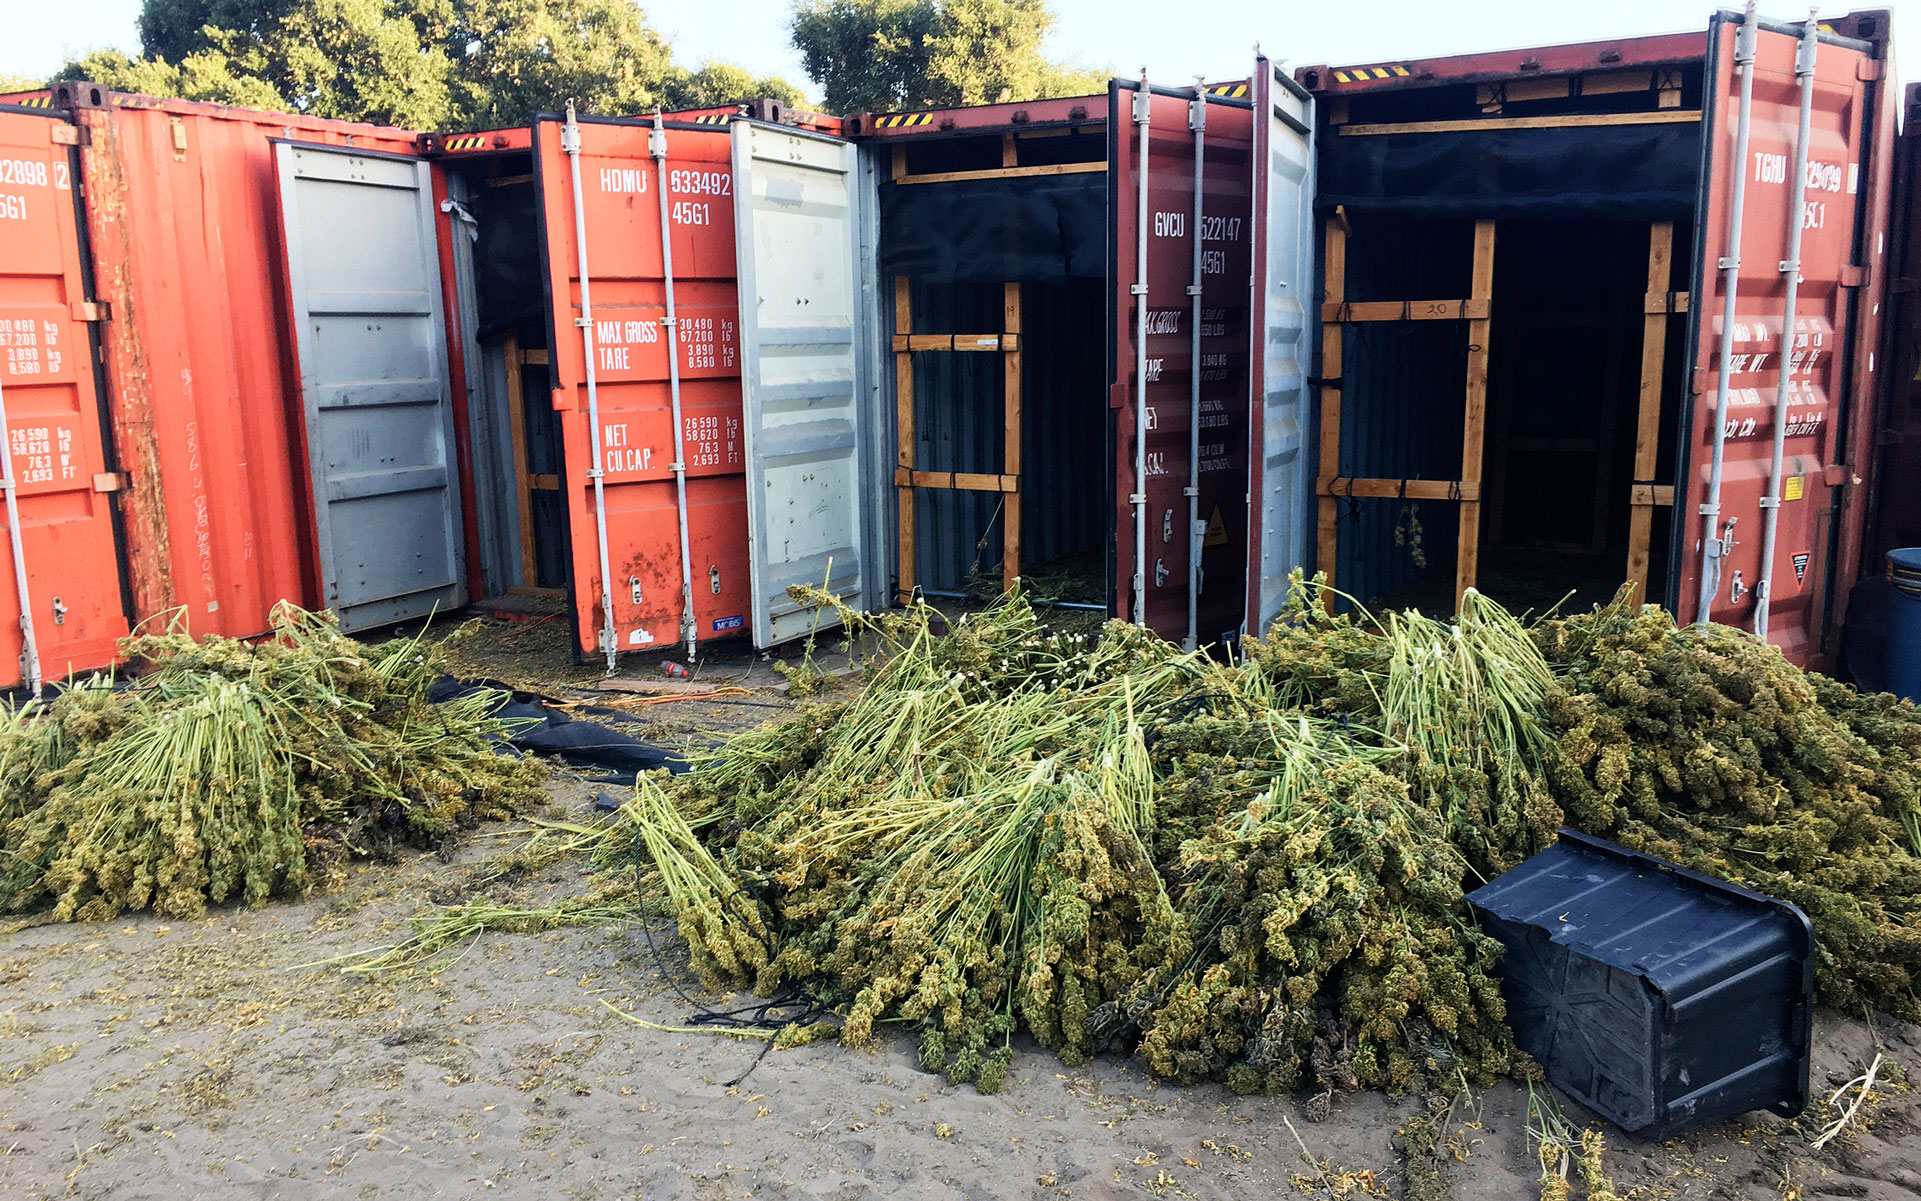 In this Tuesday, June 18, 2019, photo released by the Santa Barbara County Sheriff seized 20 tons of illegal cannabis in a four-day raid following a two-month investigation. The Santa Barbara County Sheriff's Office also destroyed 350,000 cannabis plants from the illegal grow outside Buellton, CA a city about 140 miles northwest of Los Angeles. (Santa Barbara County Sheriff via AP)